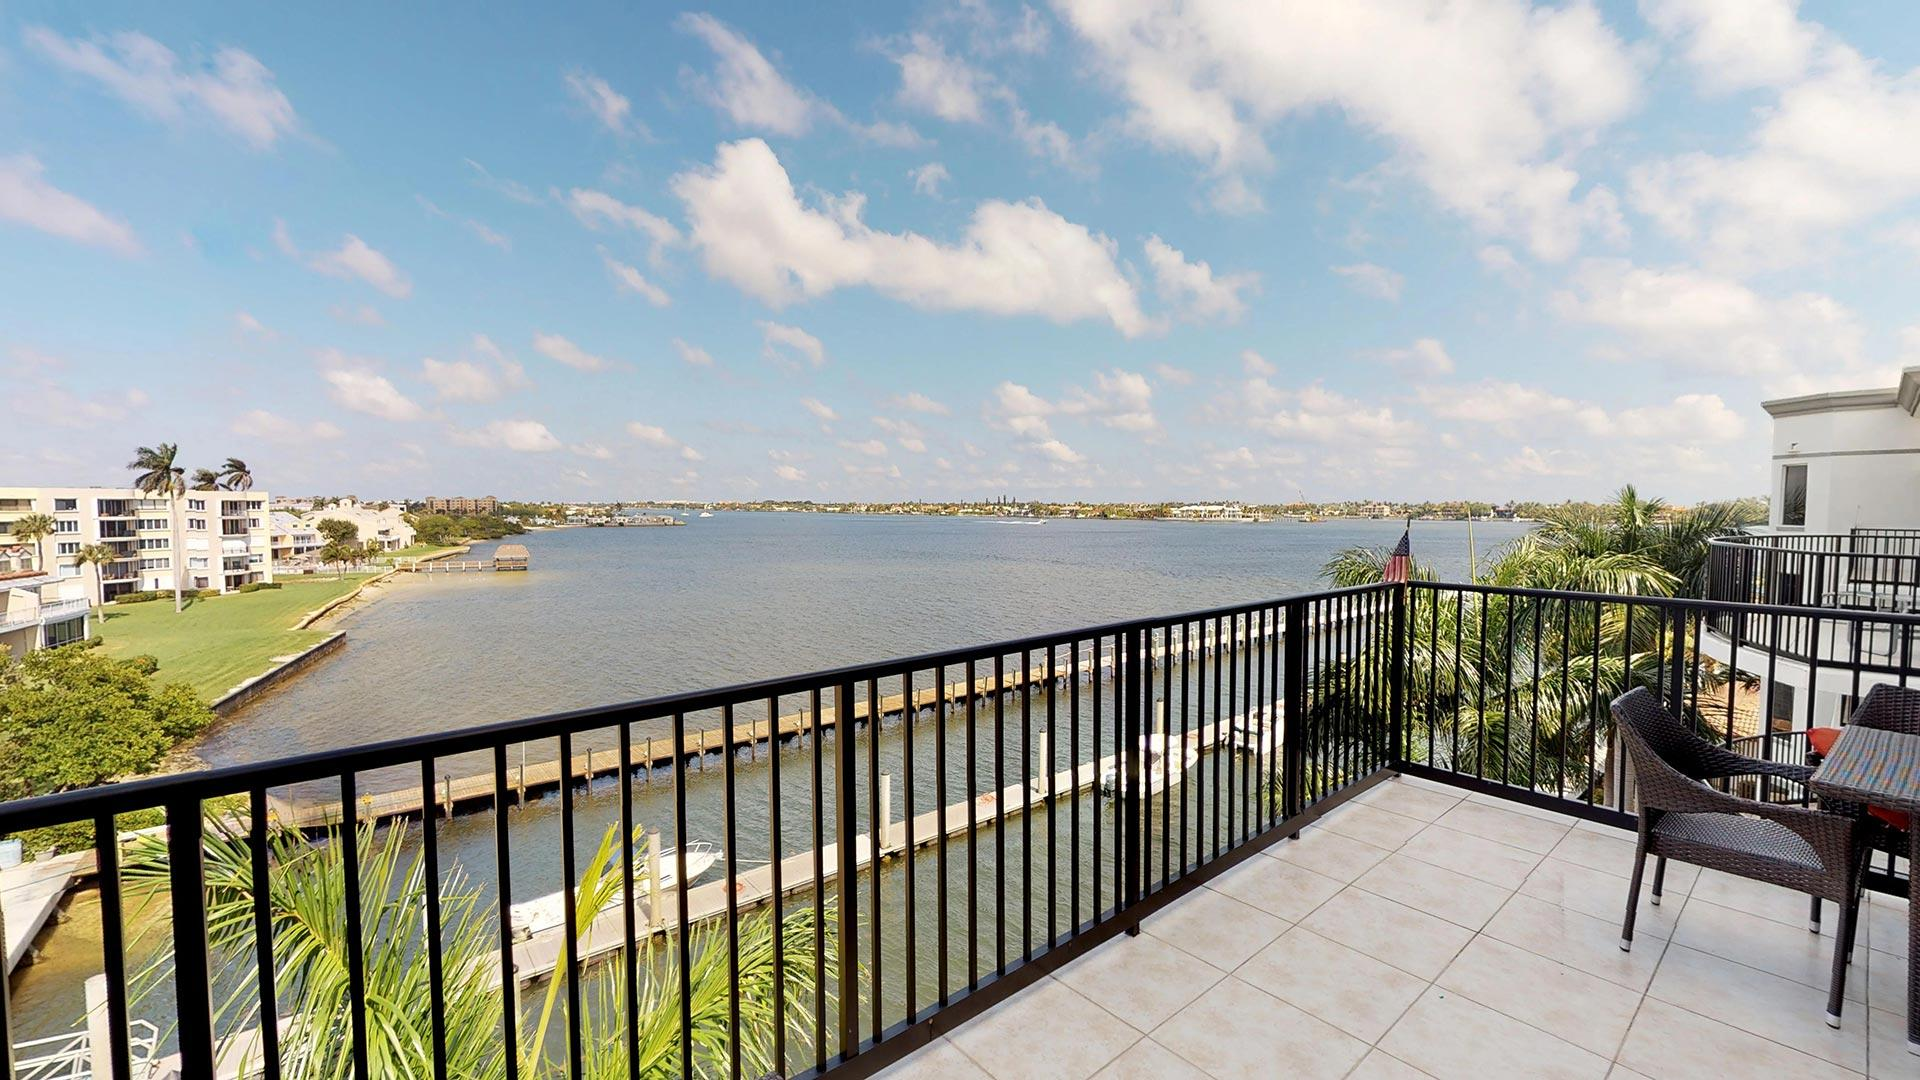 PENINUSLA ON THE INTRACOASTAL HOMES FOR SALE